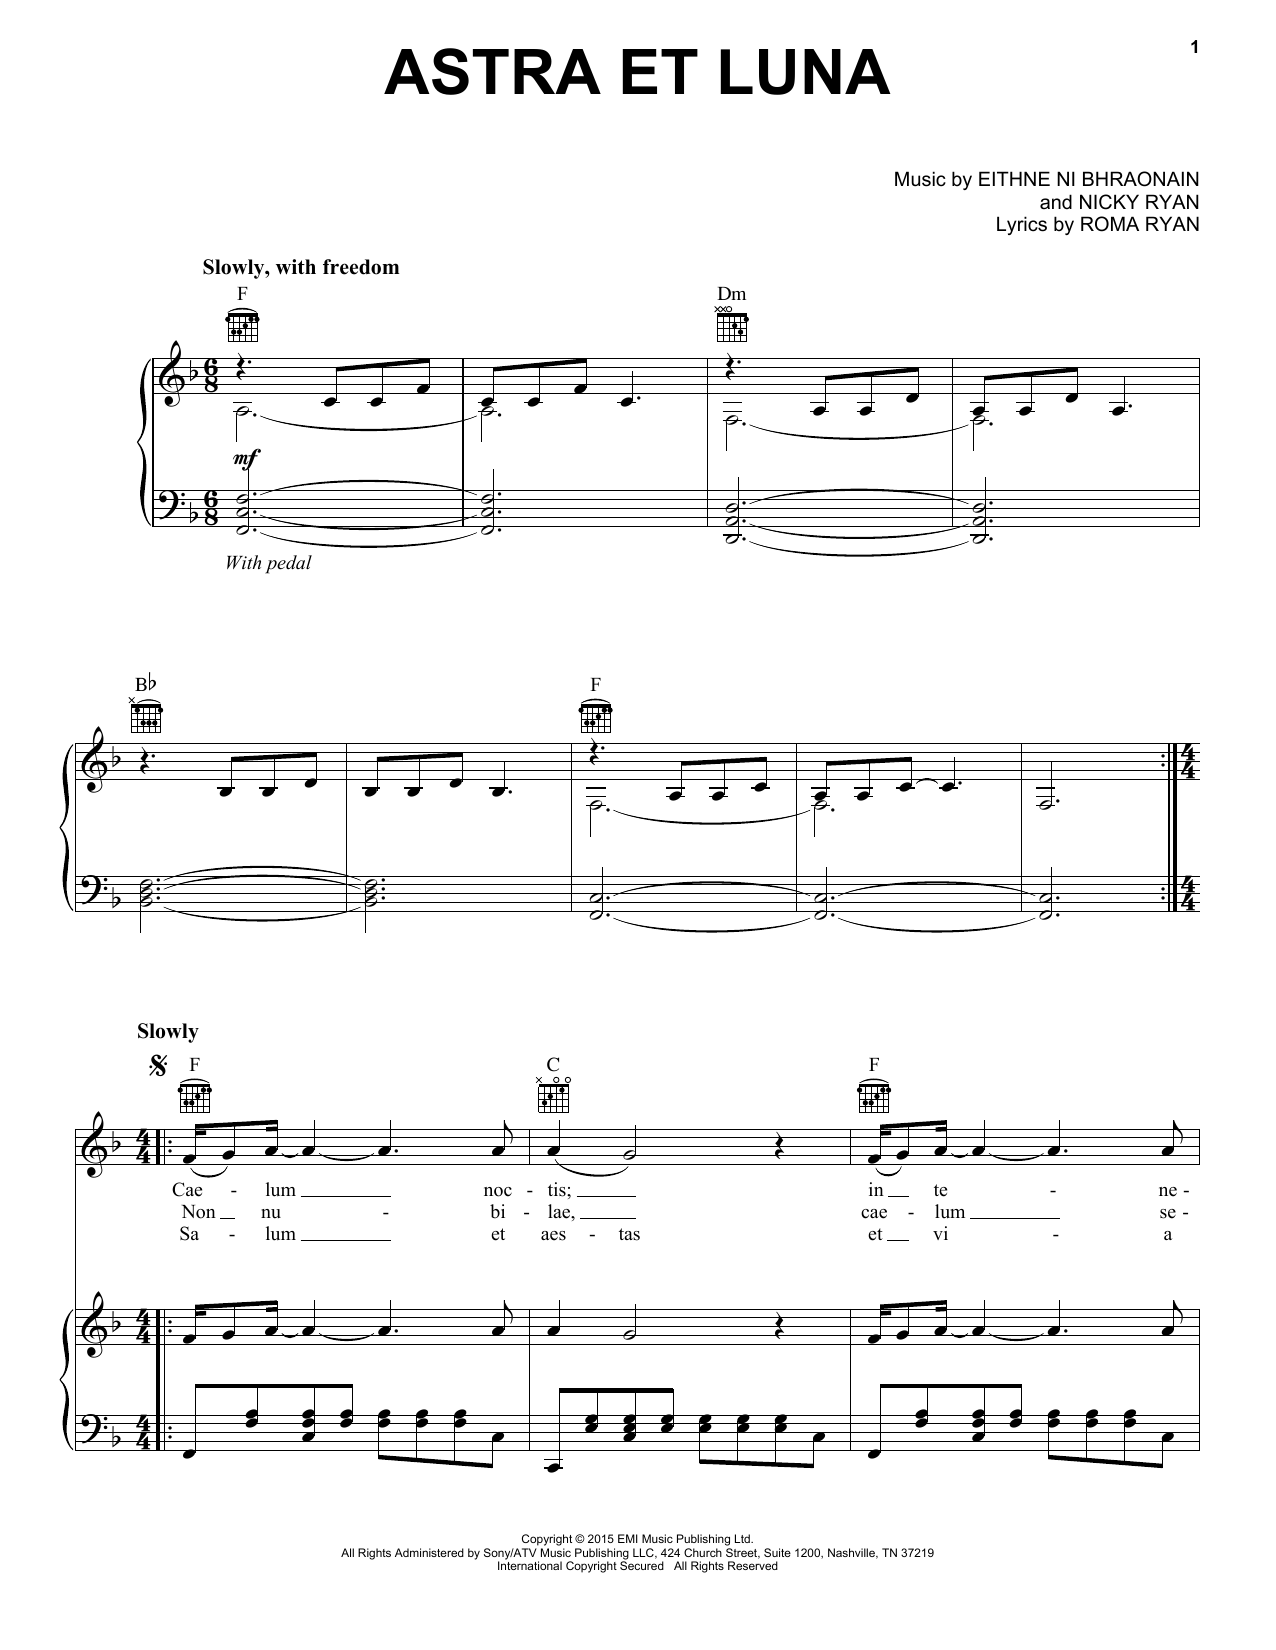 Sheet music digital files to print licensed roma ryan digital sheet music digital files to print licensed roma ryan digital sheet music hexwebz Gallery